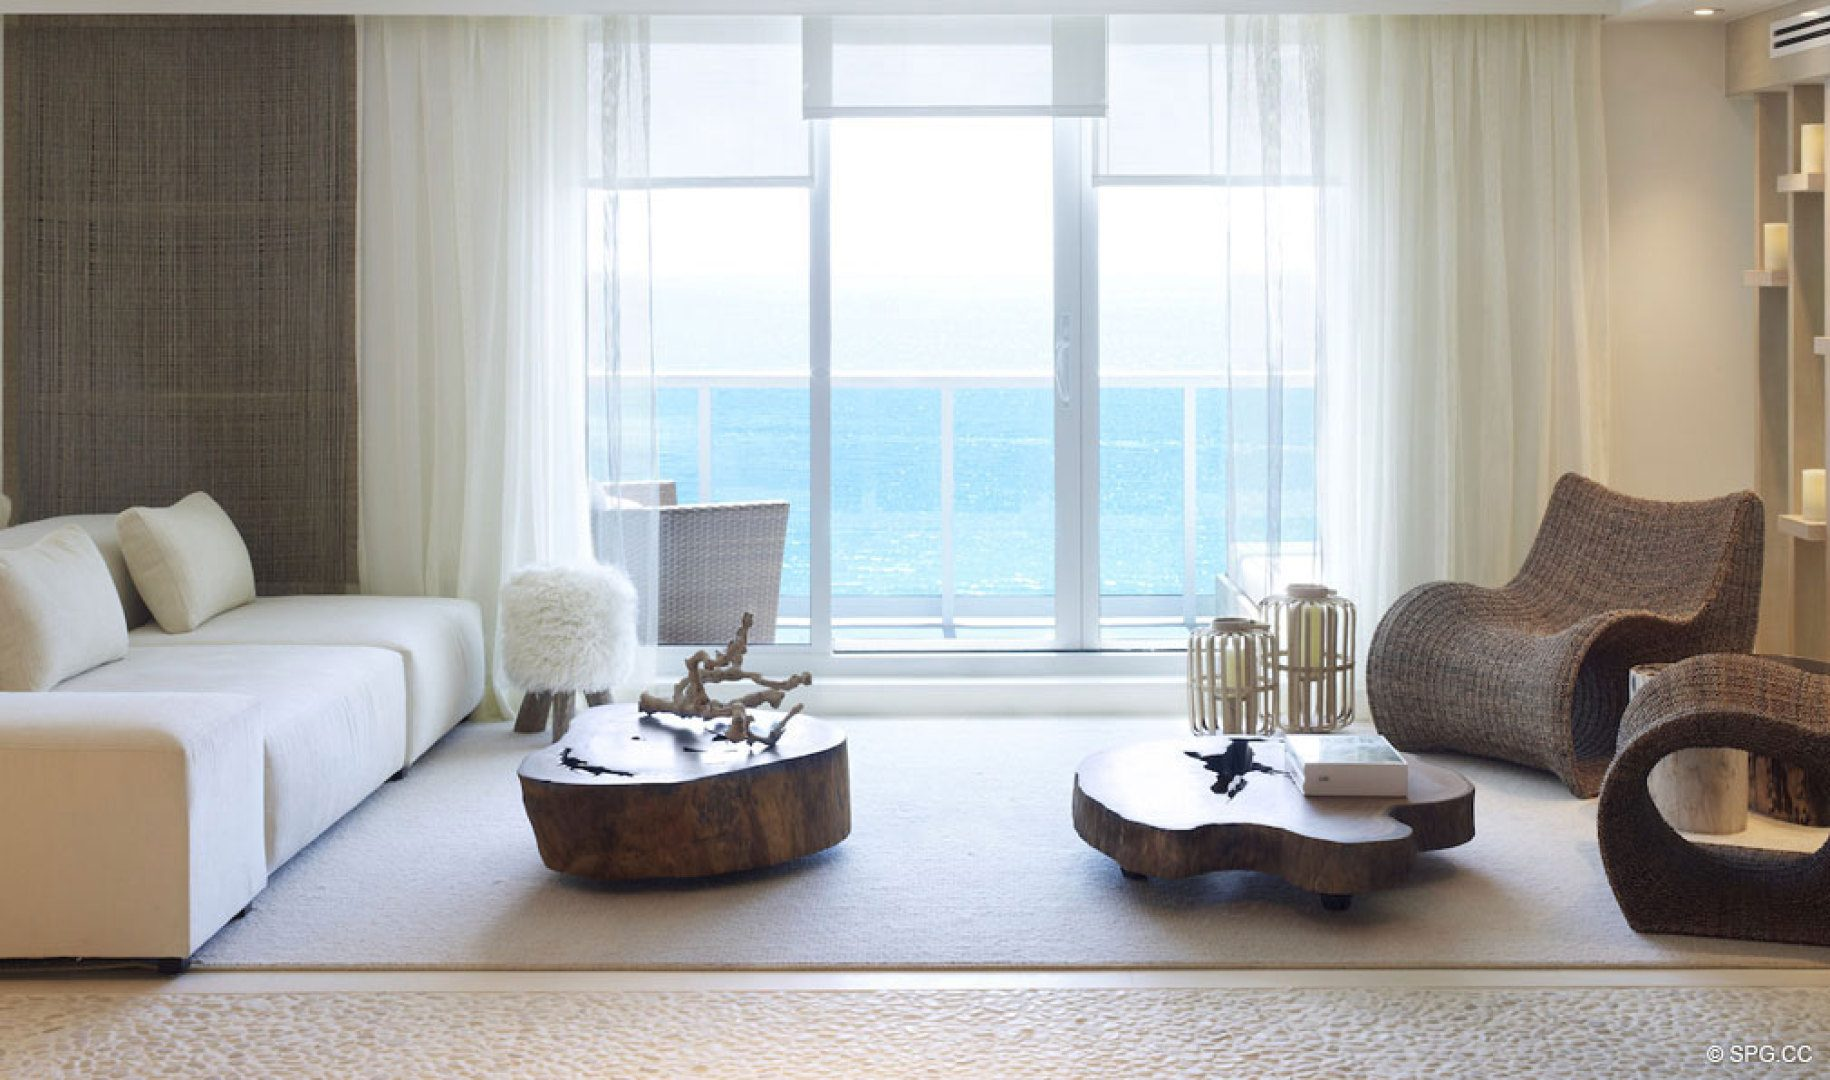 Living Room at 1 Hotel & Homes South Beach, Luxury Oceanfront Condominiums Located at 2399 Collins Ave, Miami Beach, FL 33139